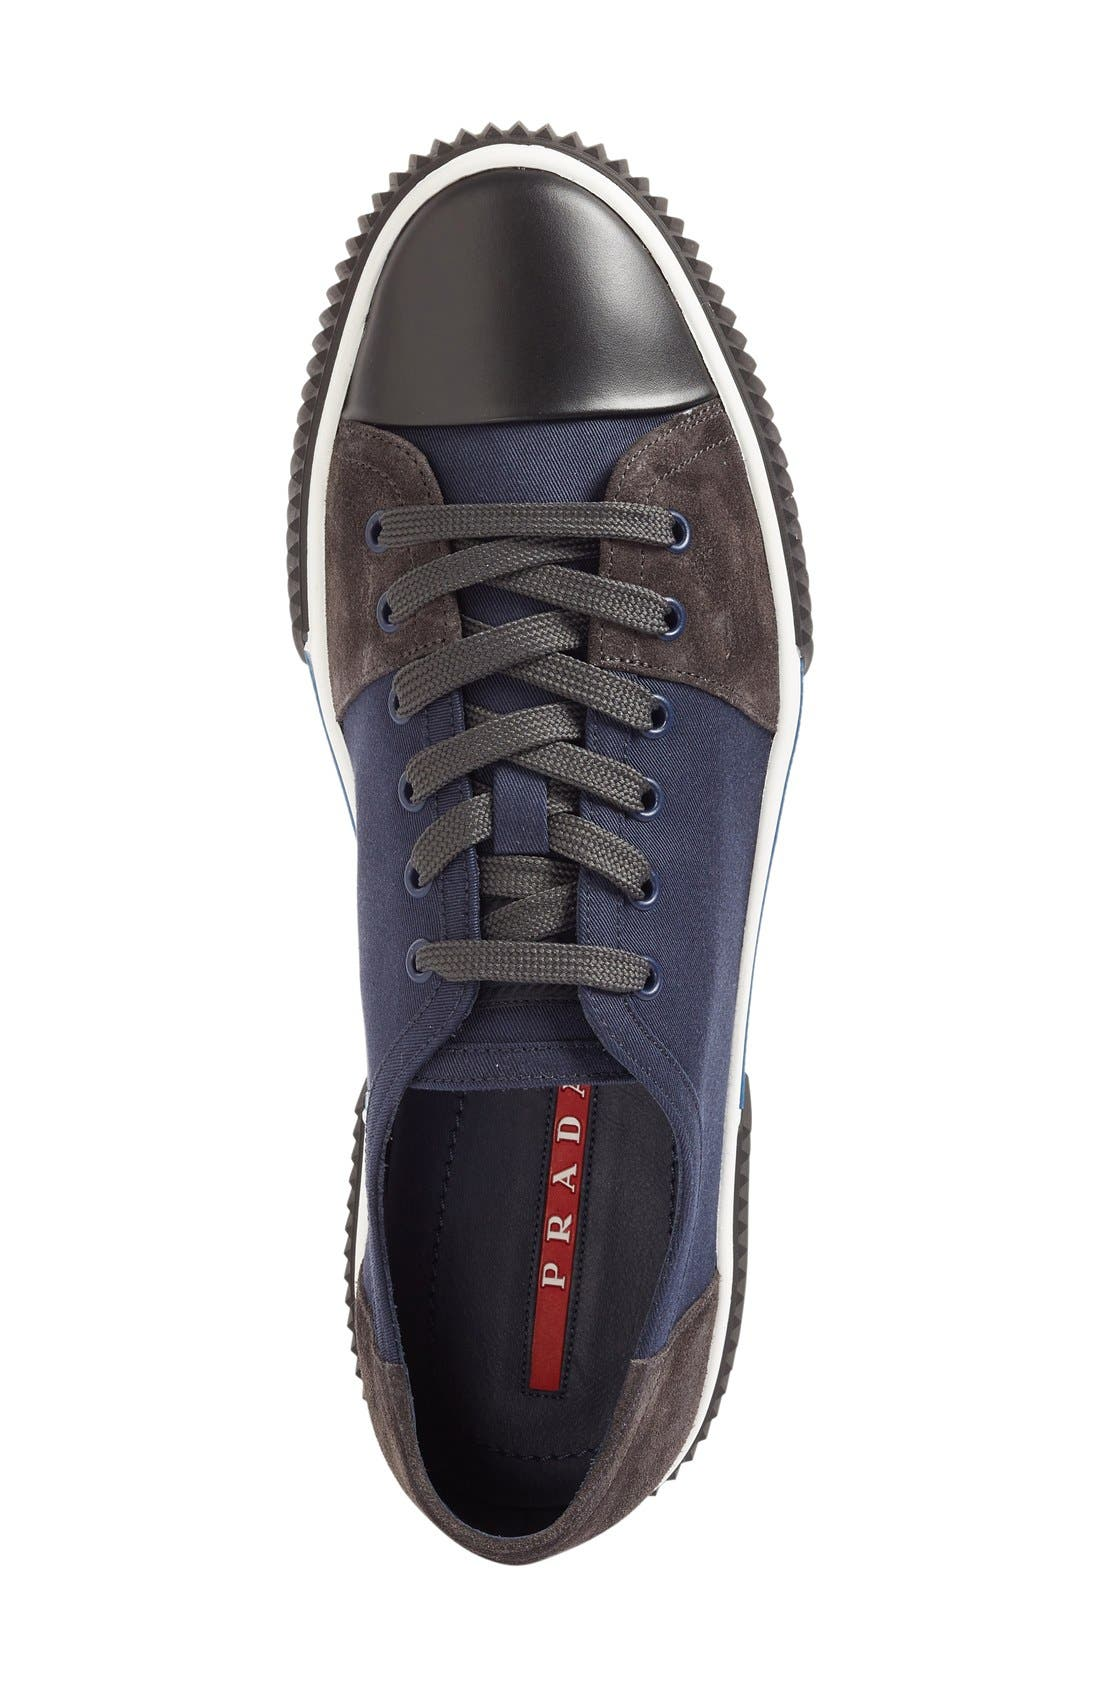 Linea Rossa Sneaker,                             Alternate thumbnail 3, color,                             Blue Fabric